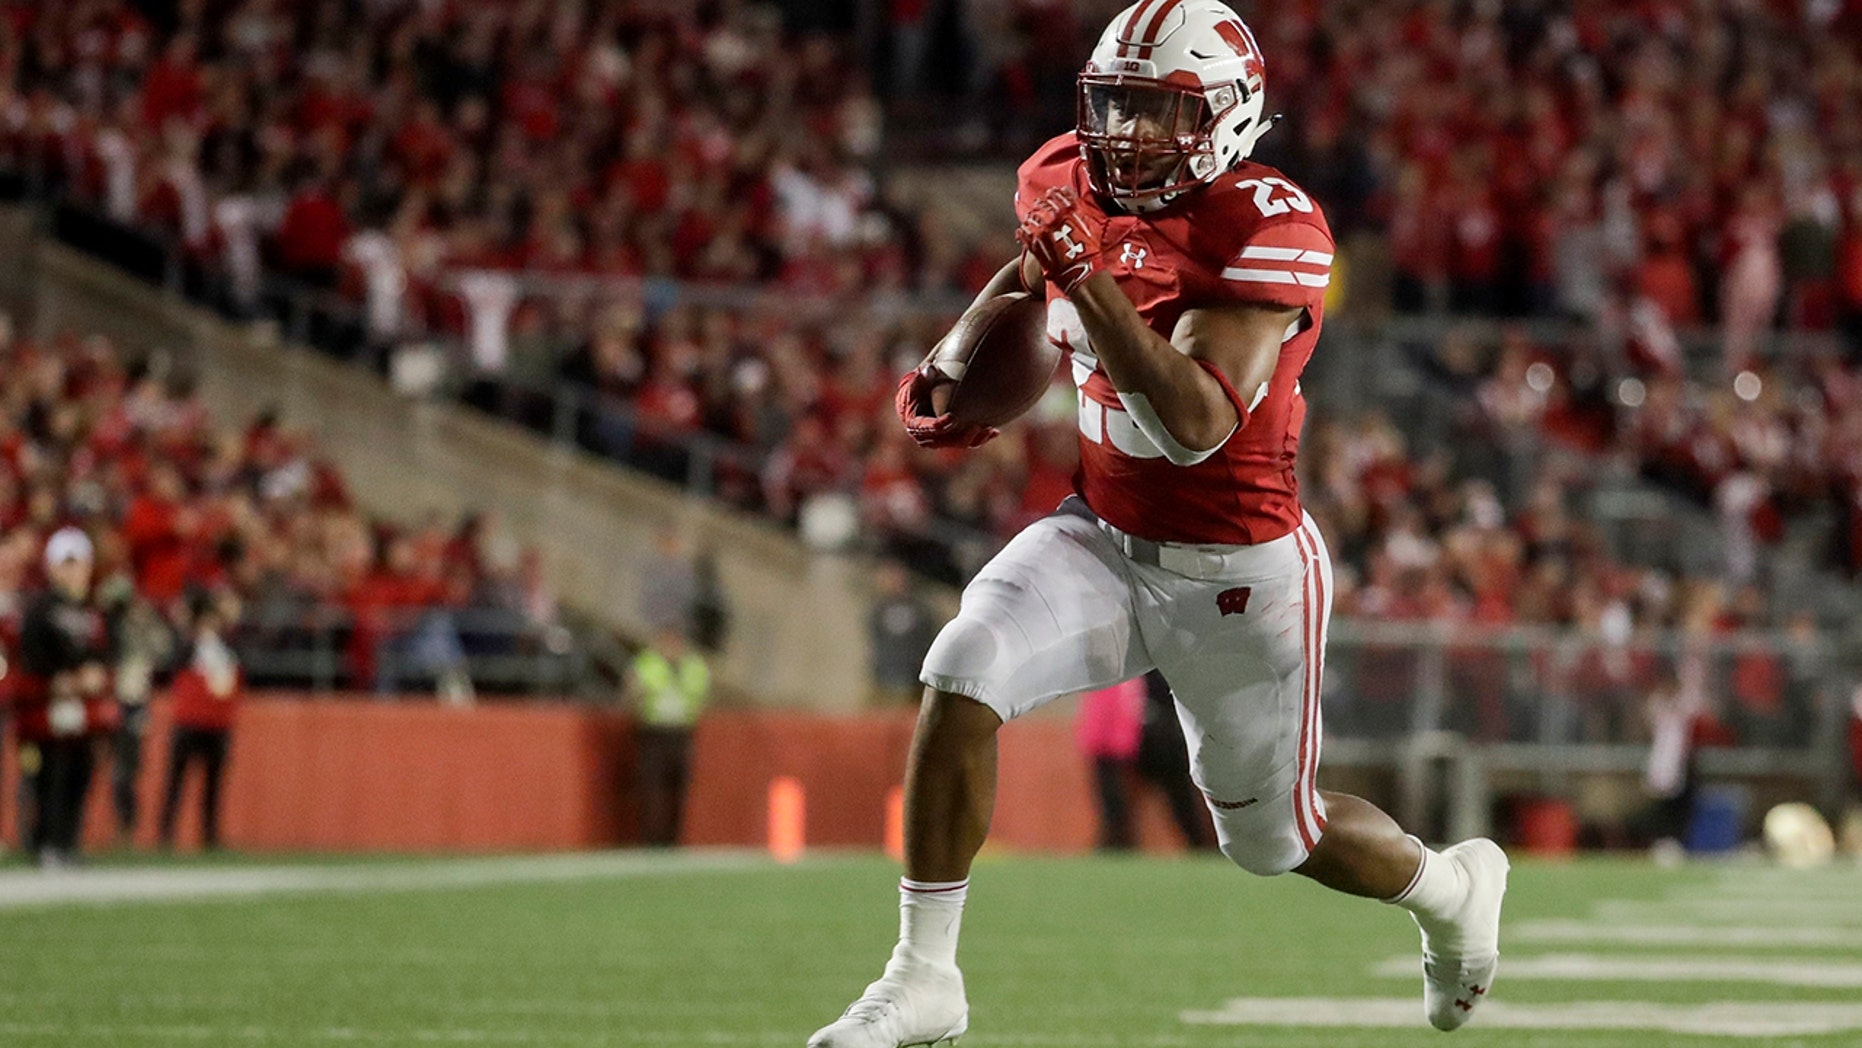 FILE - In this Oct. 6, 2018, file photo, Wisconsin's Jonathan Taylor runs for a touchdown during the second half of an NCAA college football game against Nebraska, in Madison, Wis. College football's race for its top individual awards this season will have a couple of standout players seeking repeats. Wisconsin's Jonathan Taylor won the Doak Walker Award as the nation's top running back last season, while Alabama's Jerry Jeudy earned the Fred Biletnikoff Award as college football's most outstanding receiver. Both players are back for their junior seasons. (AP Photo/Morry Gash, File)